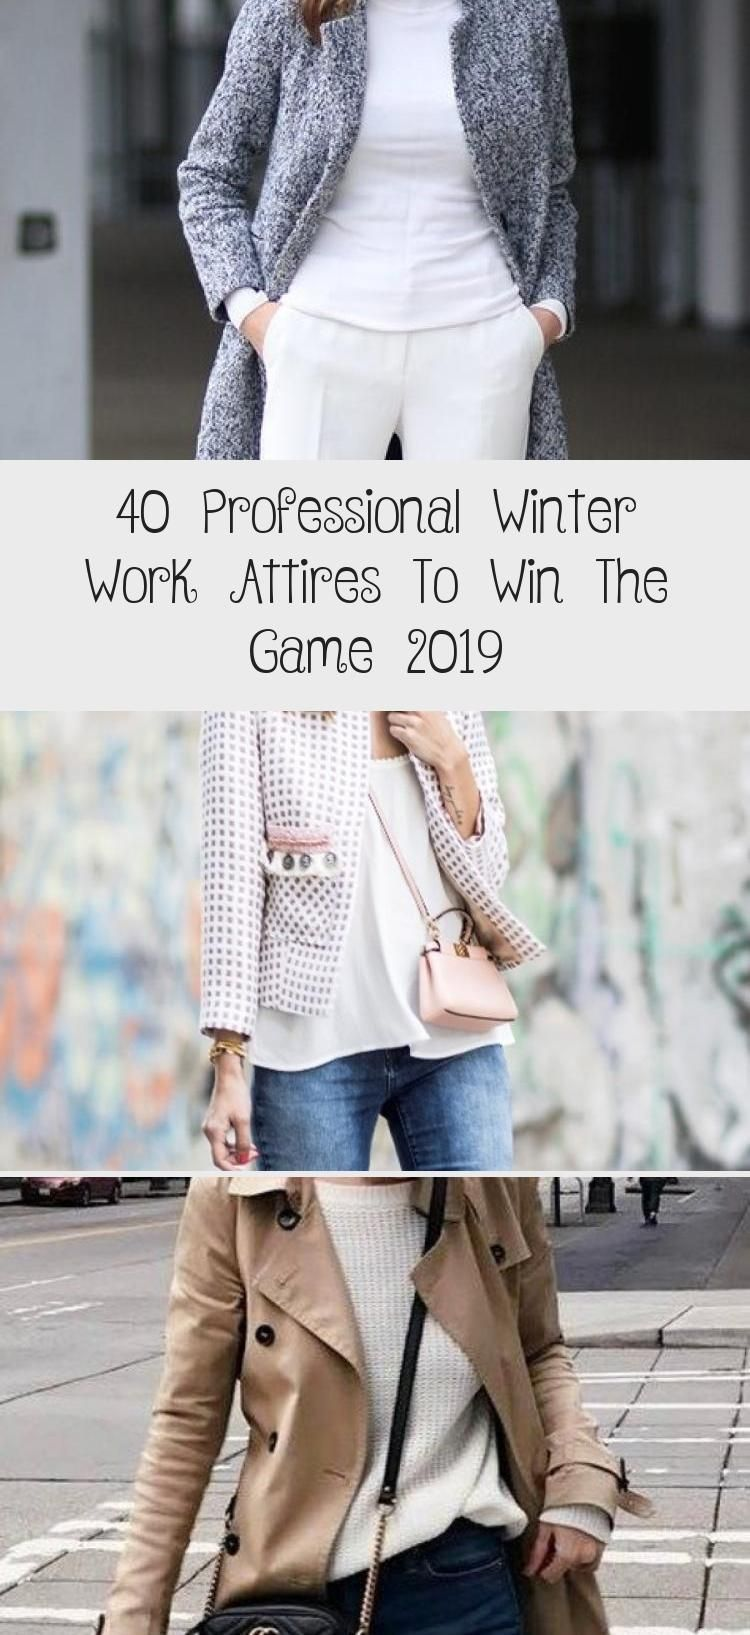 40 Professional Winter Work Attires To Win The Game 2019 - OUTFIT ,  #Attires #corporateattir... #businessattireforyoungwomen